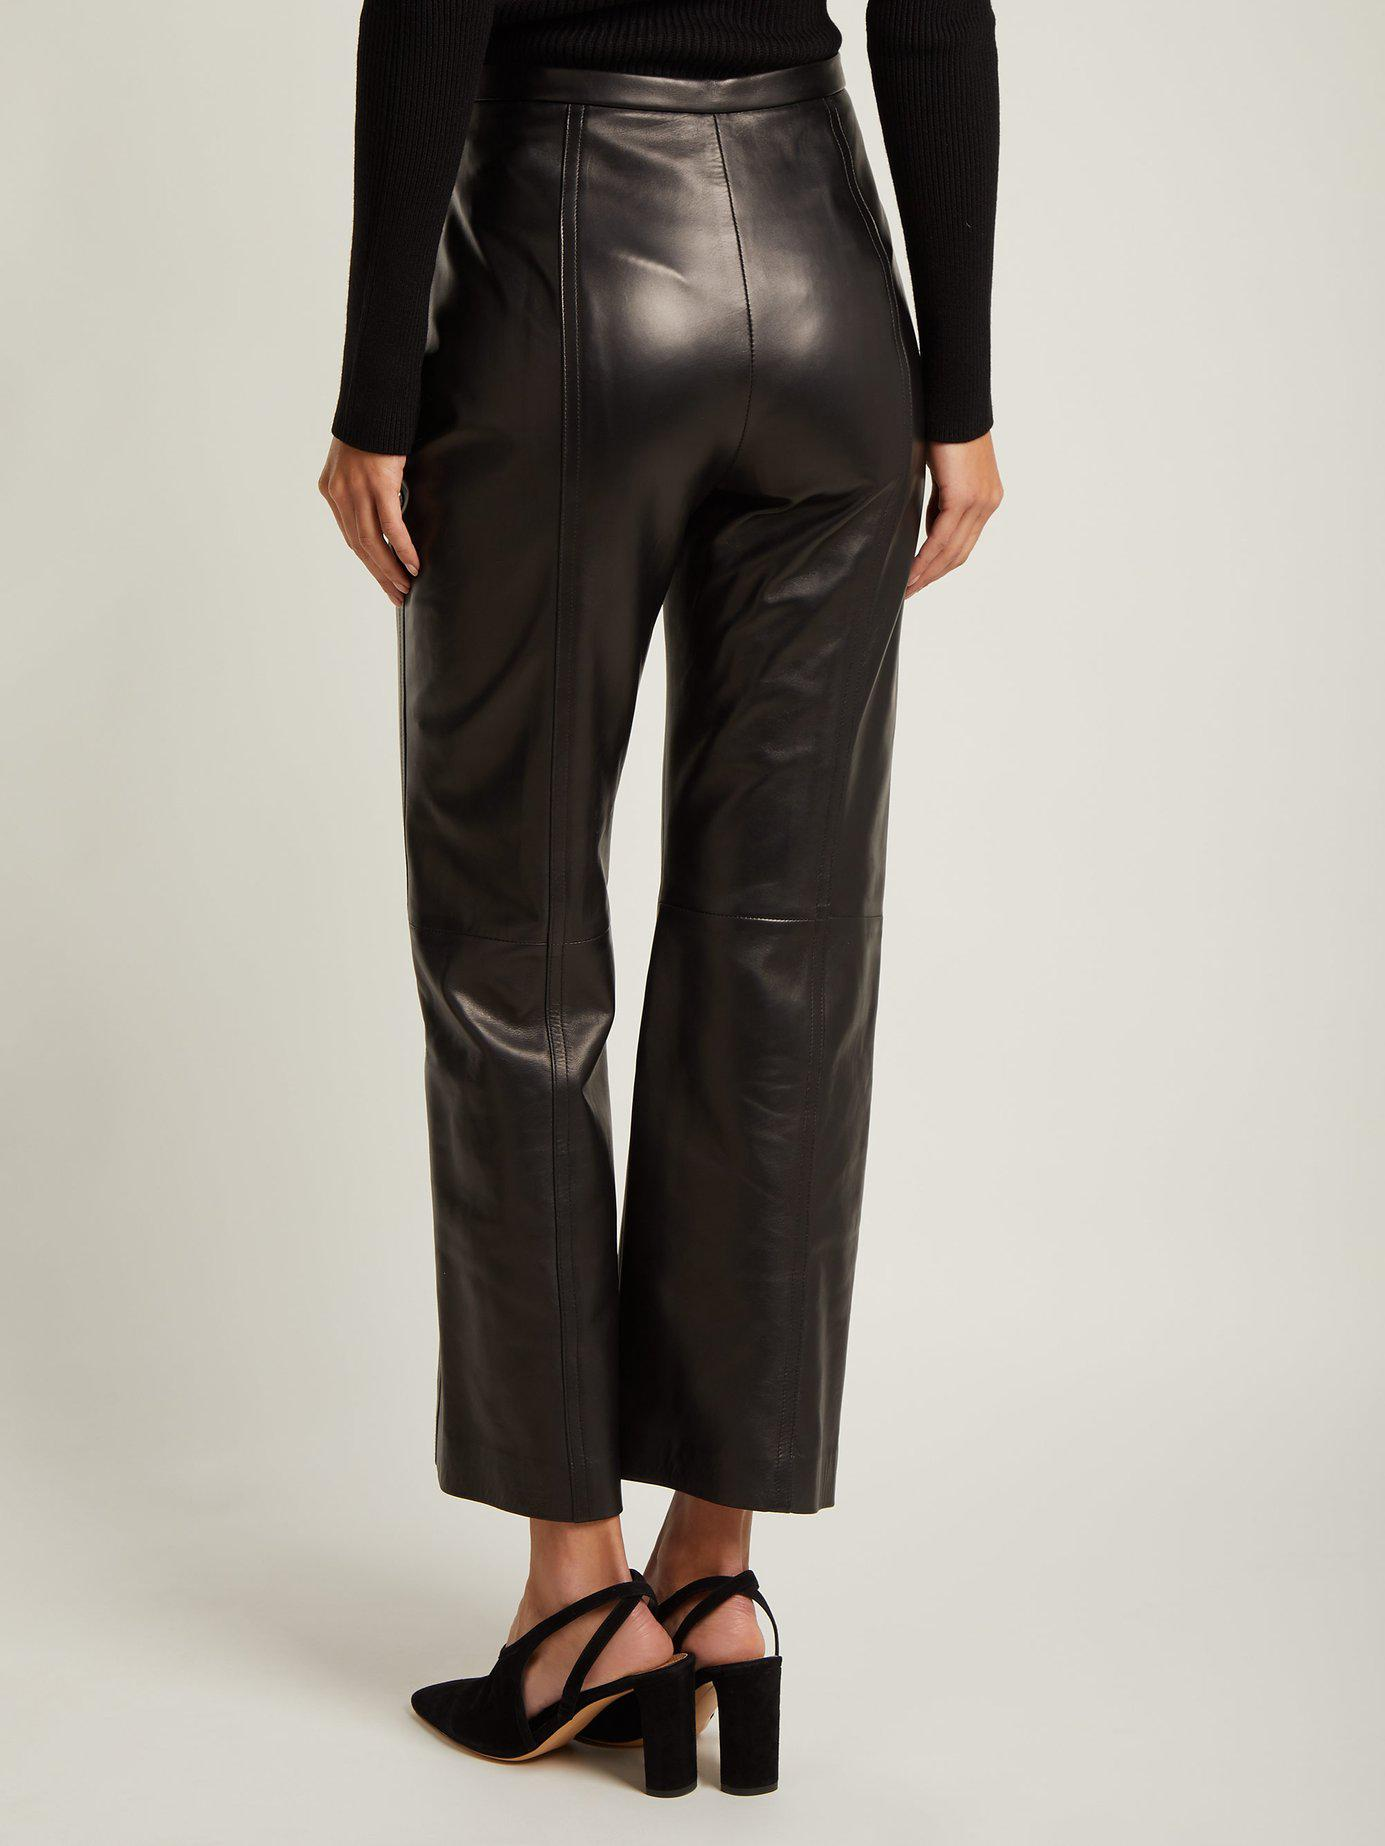 6d066a0eb213ff Khaite Roxanne Straight Leg Leather Trousers in Black - Lyst